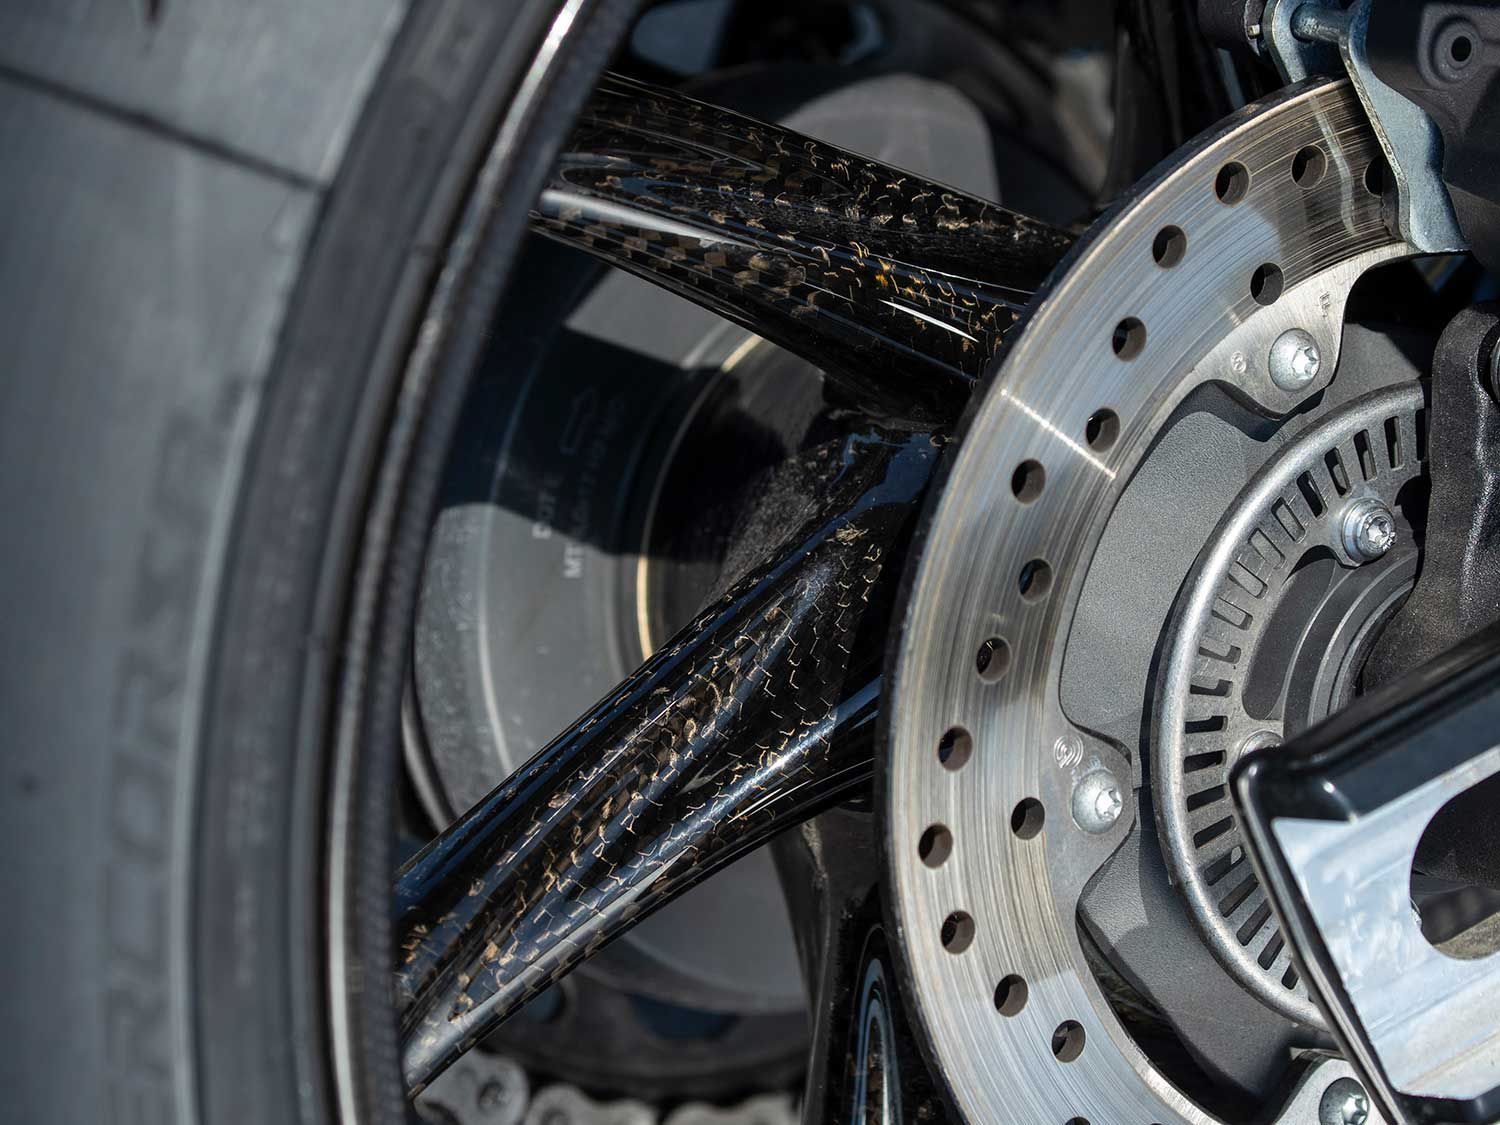 The S 1000 RR is the first production sportbike to benefit from carbon fiber wheels as an option from the factory.